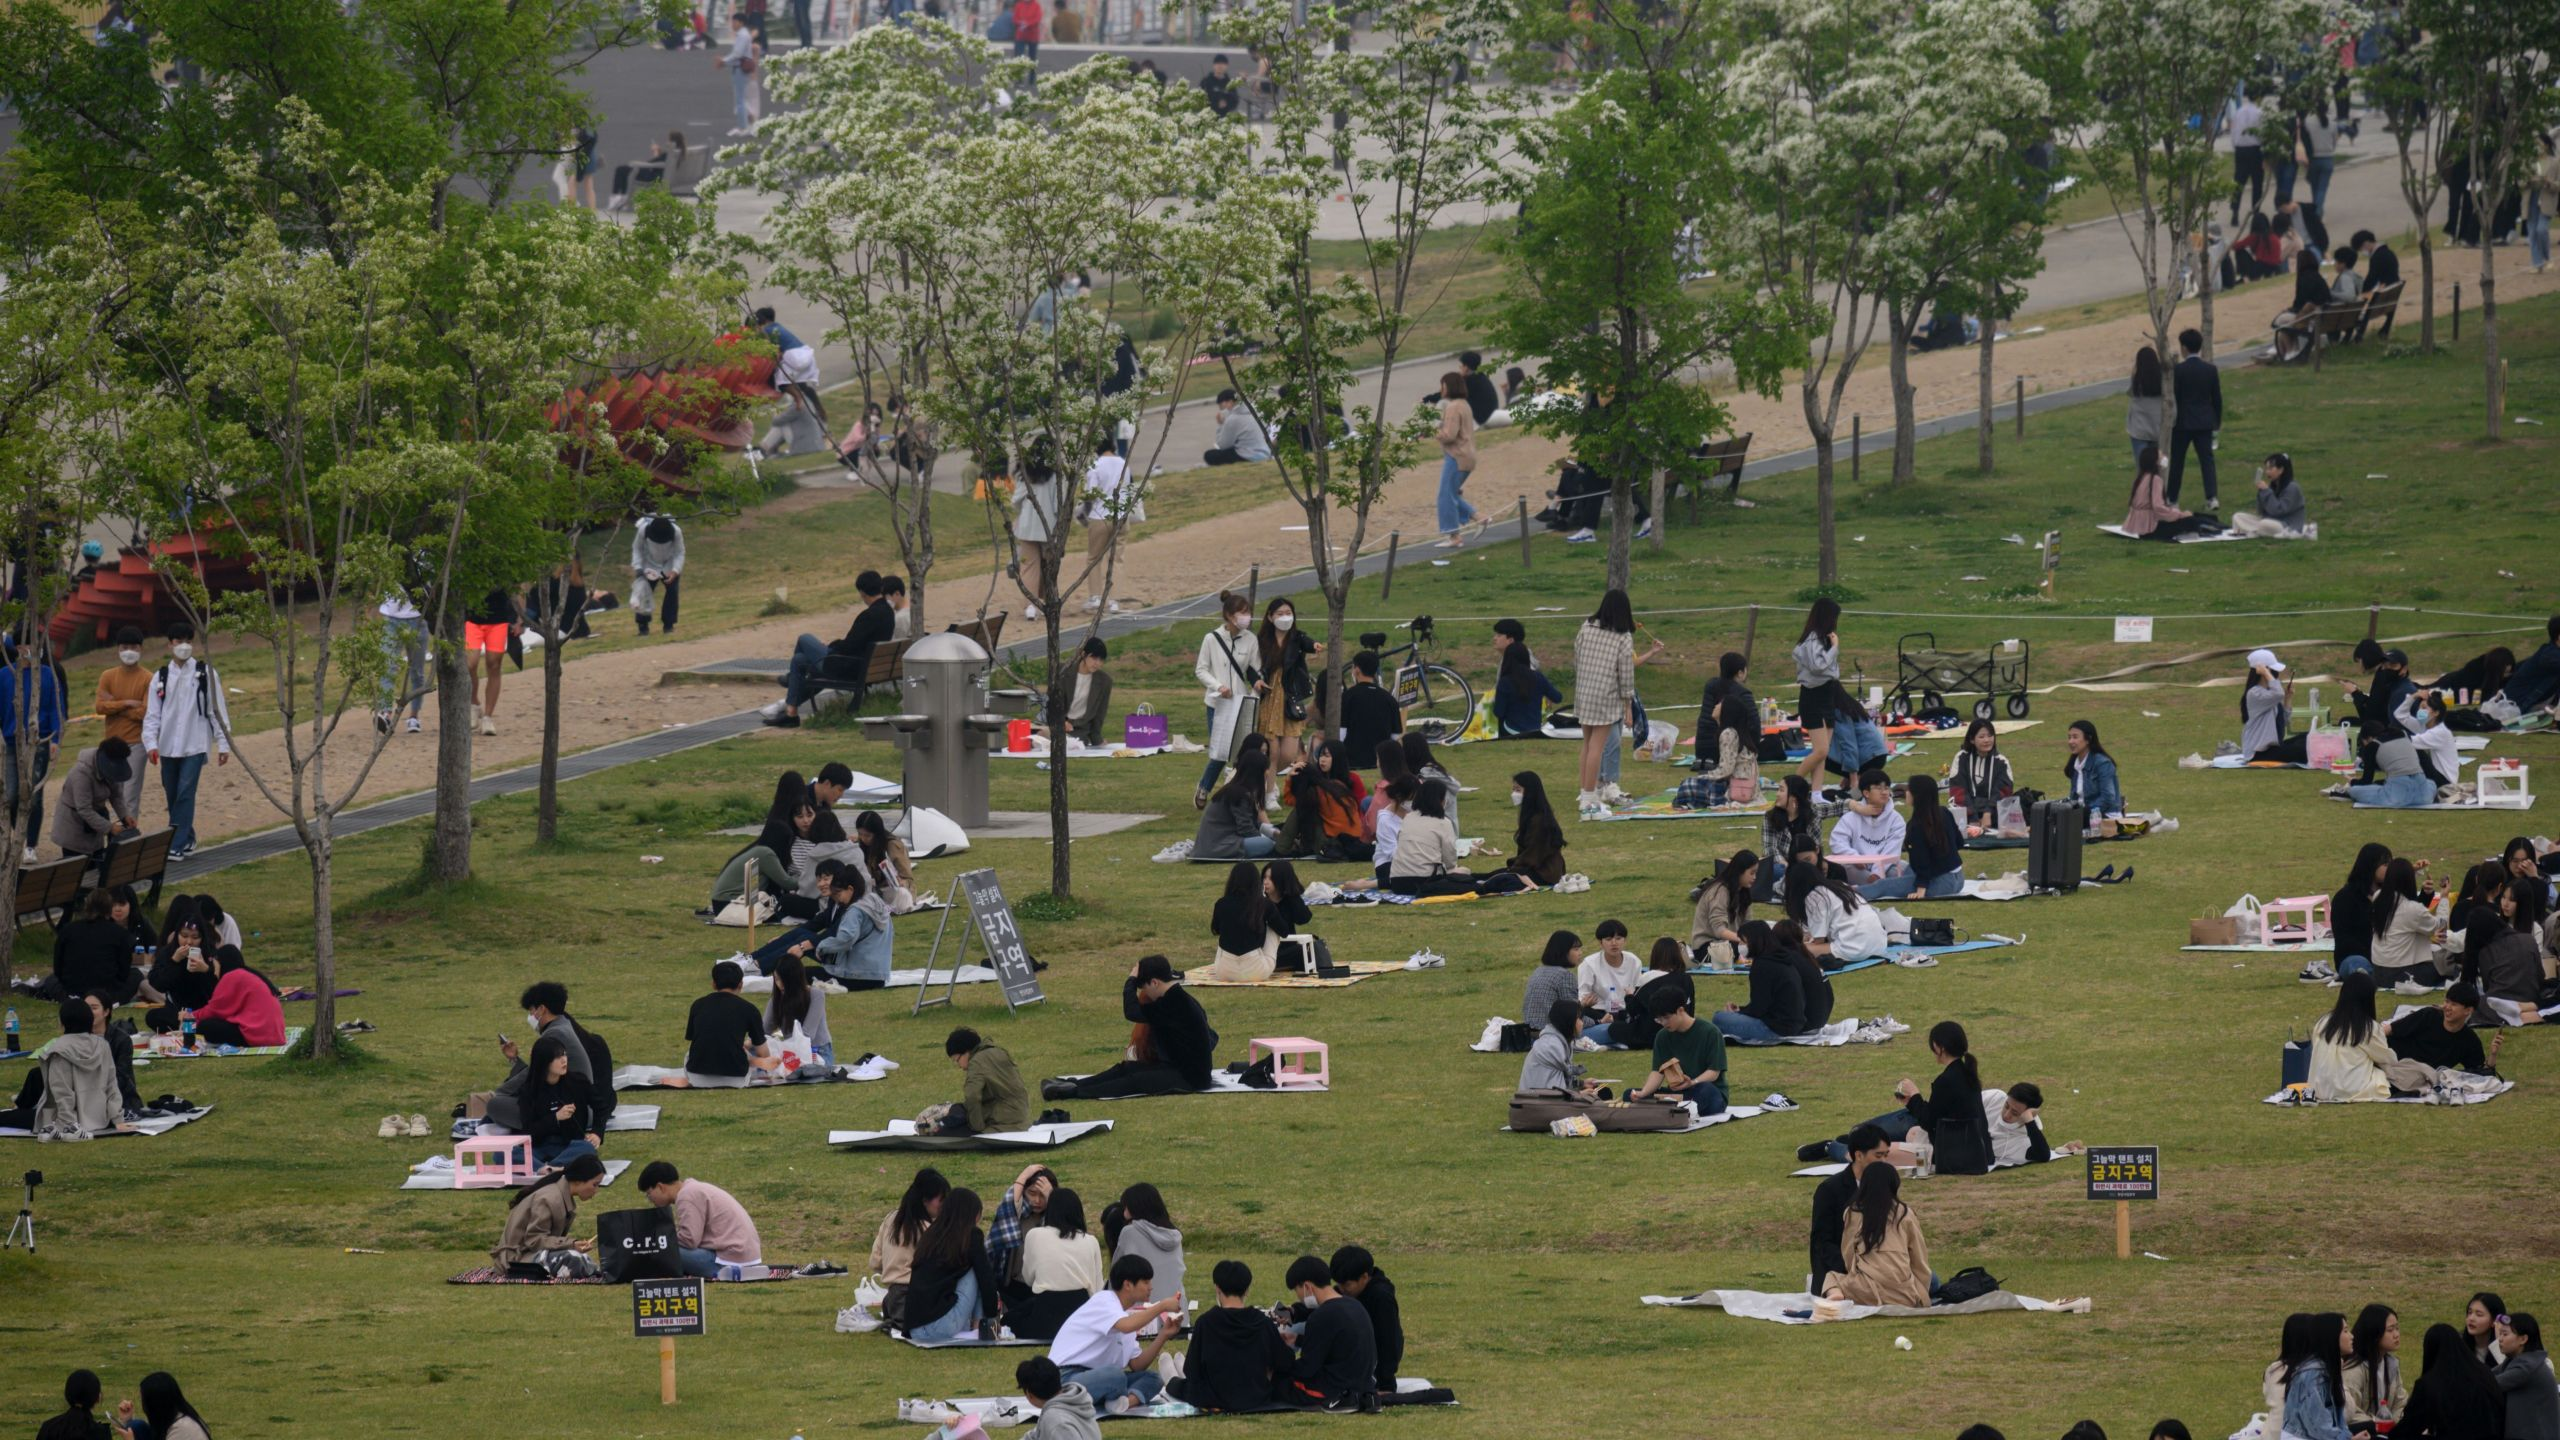 In a photo taken on May 10, 2020, people sit in a park in Seoul. (ED JONES/AFP via Getty Images)